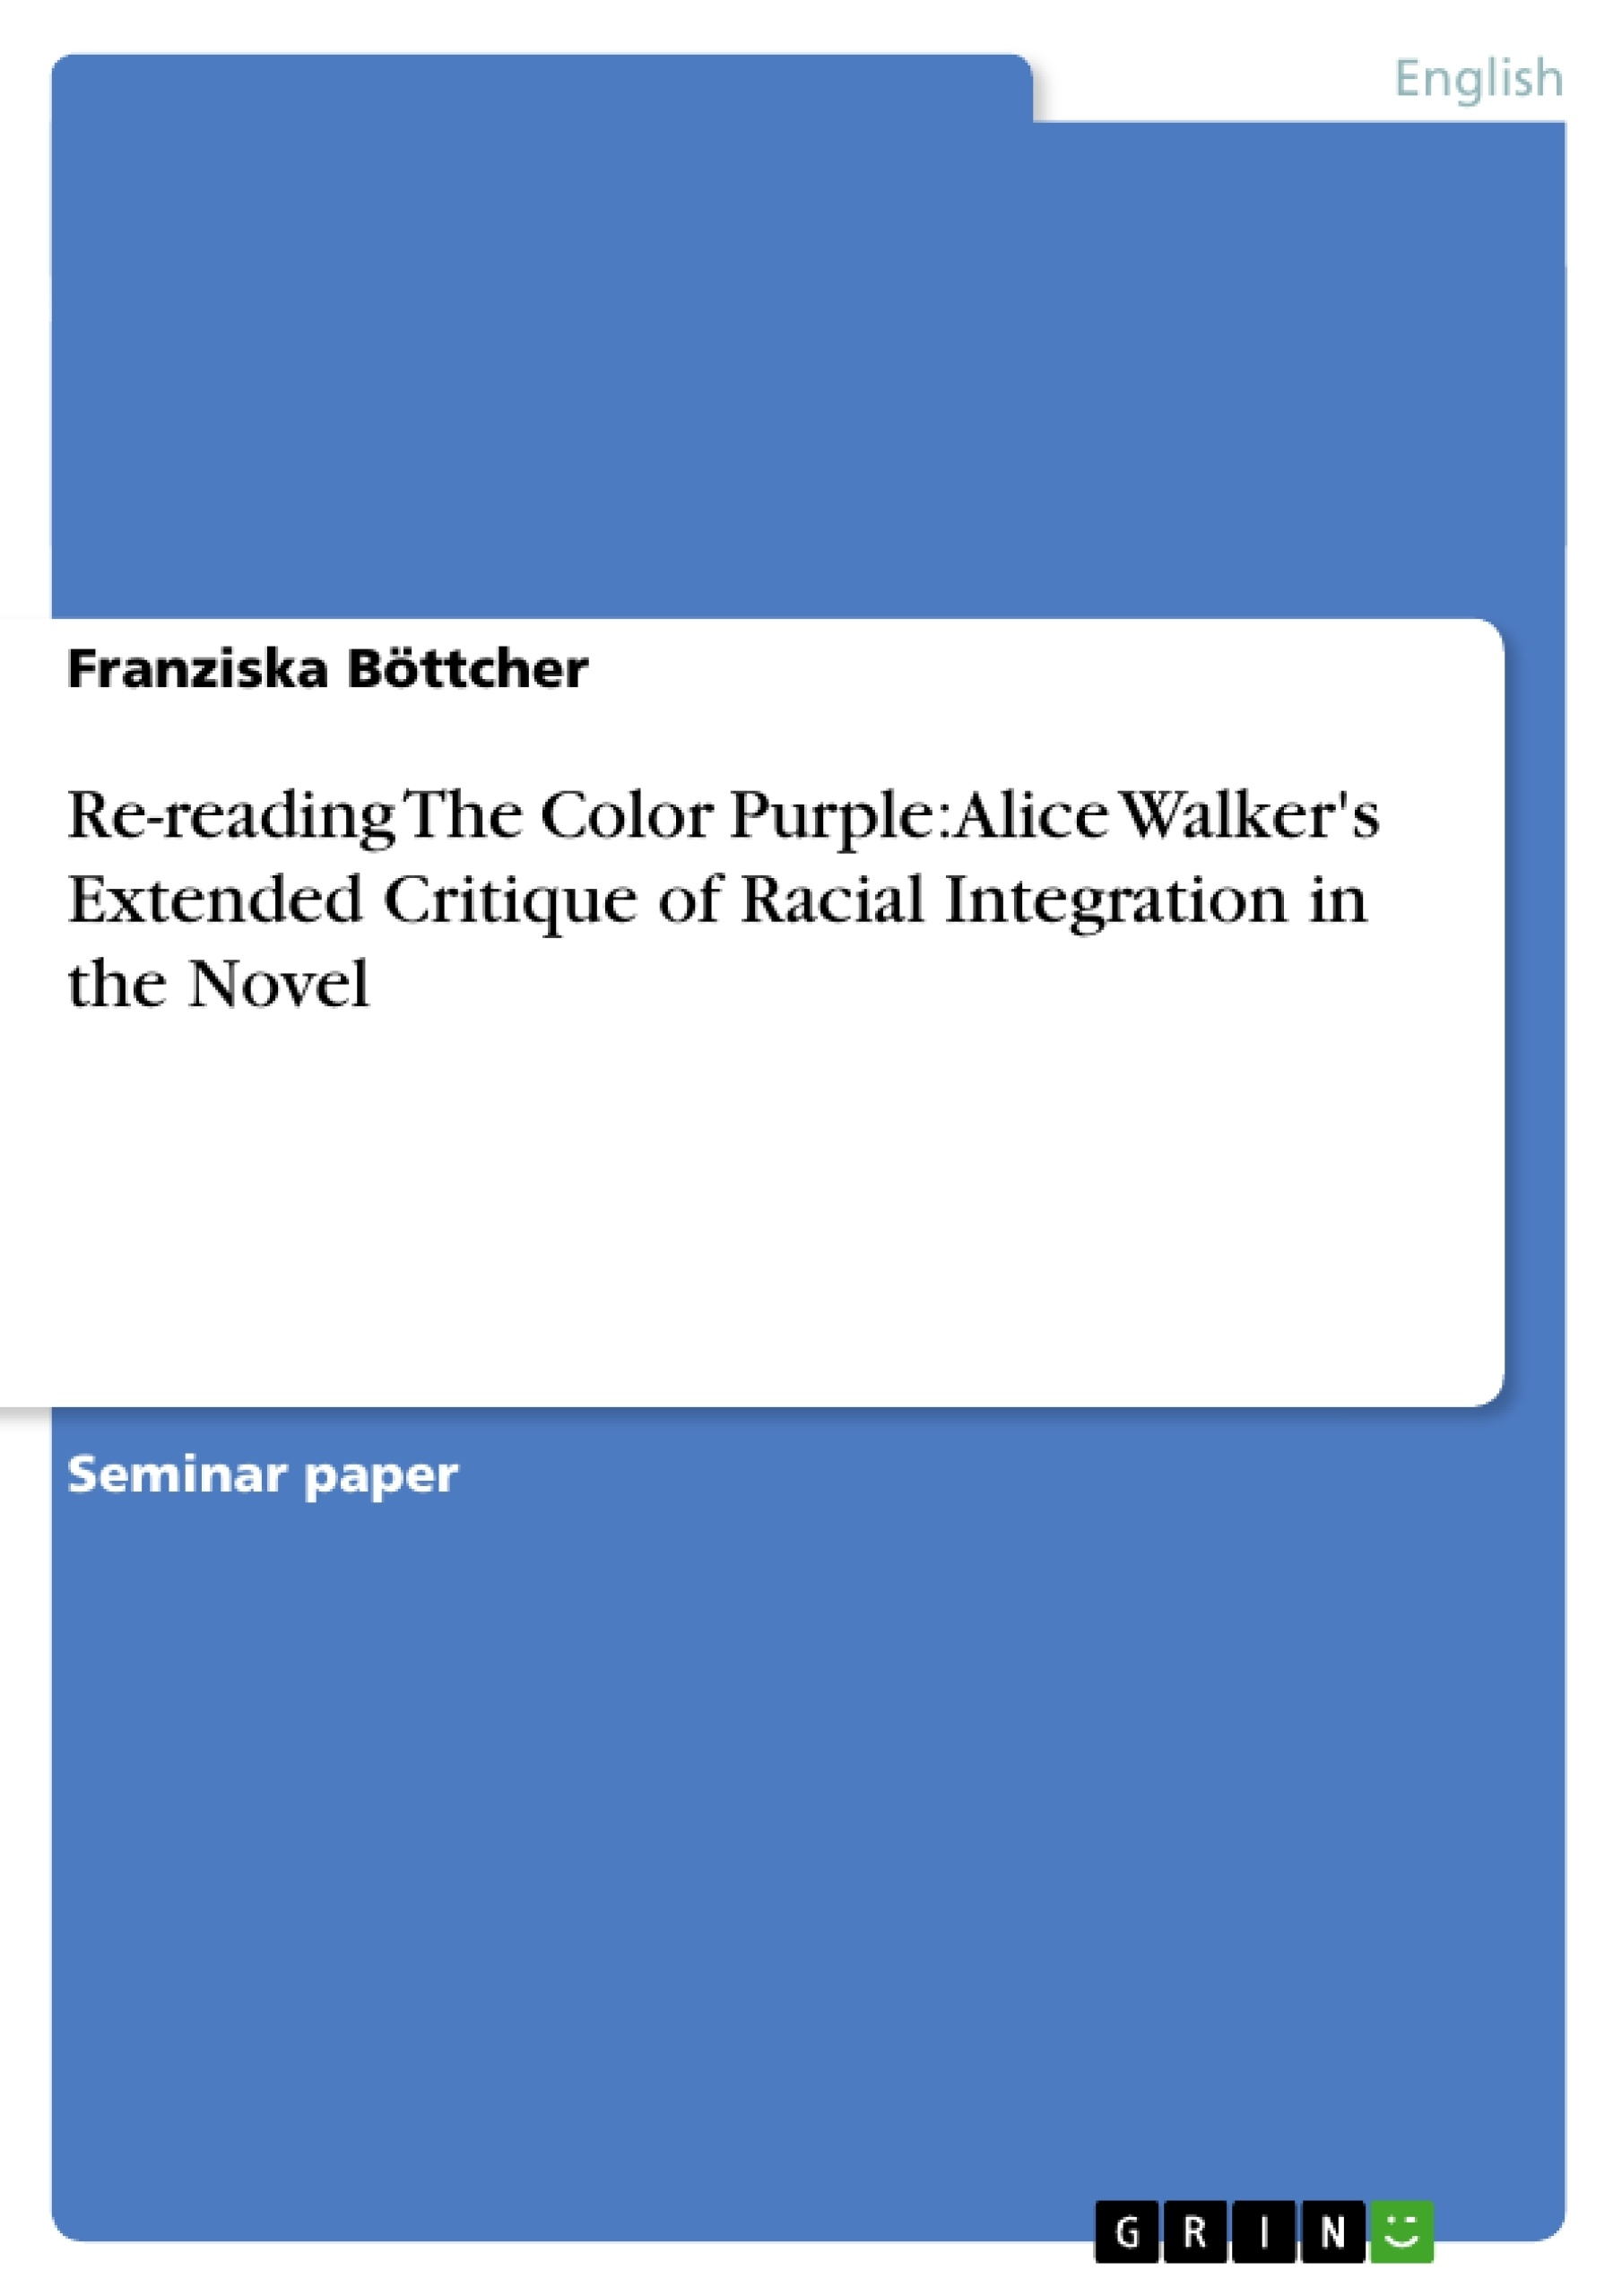 Title: Re-reading The Color Purple: Alice Walker's Extended Critique of Racial Integration in the Novel